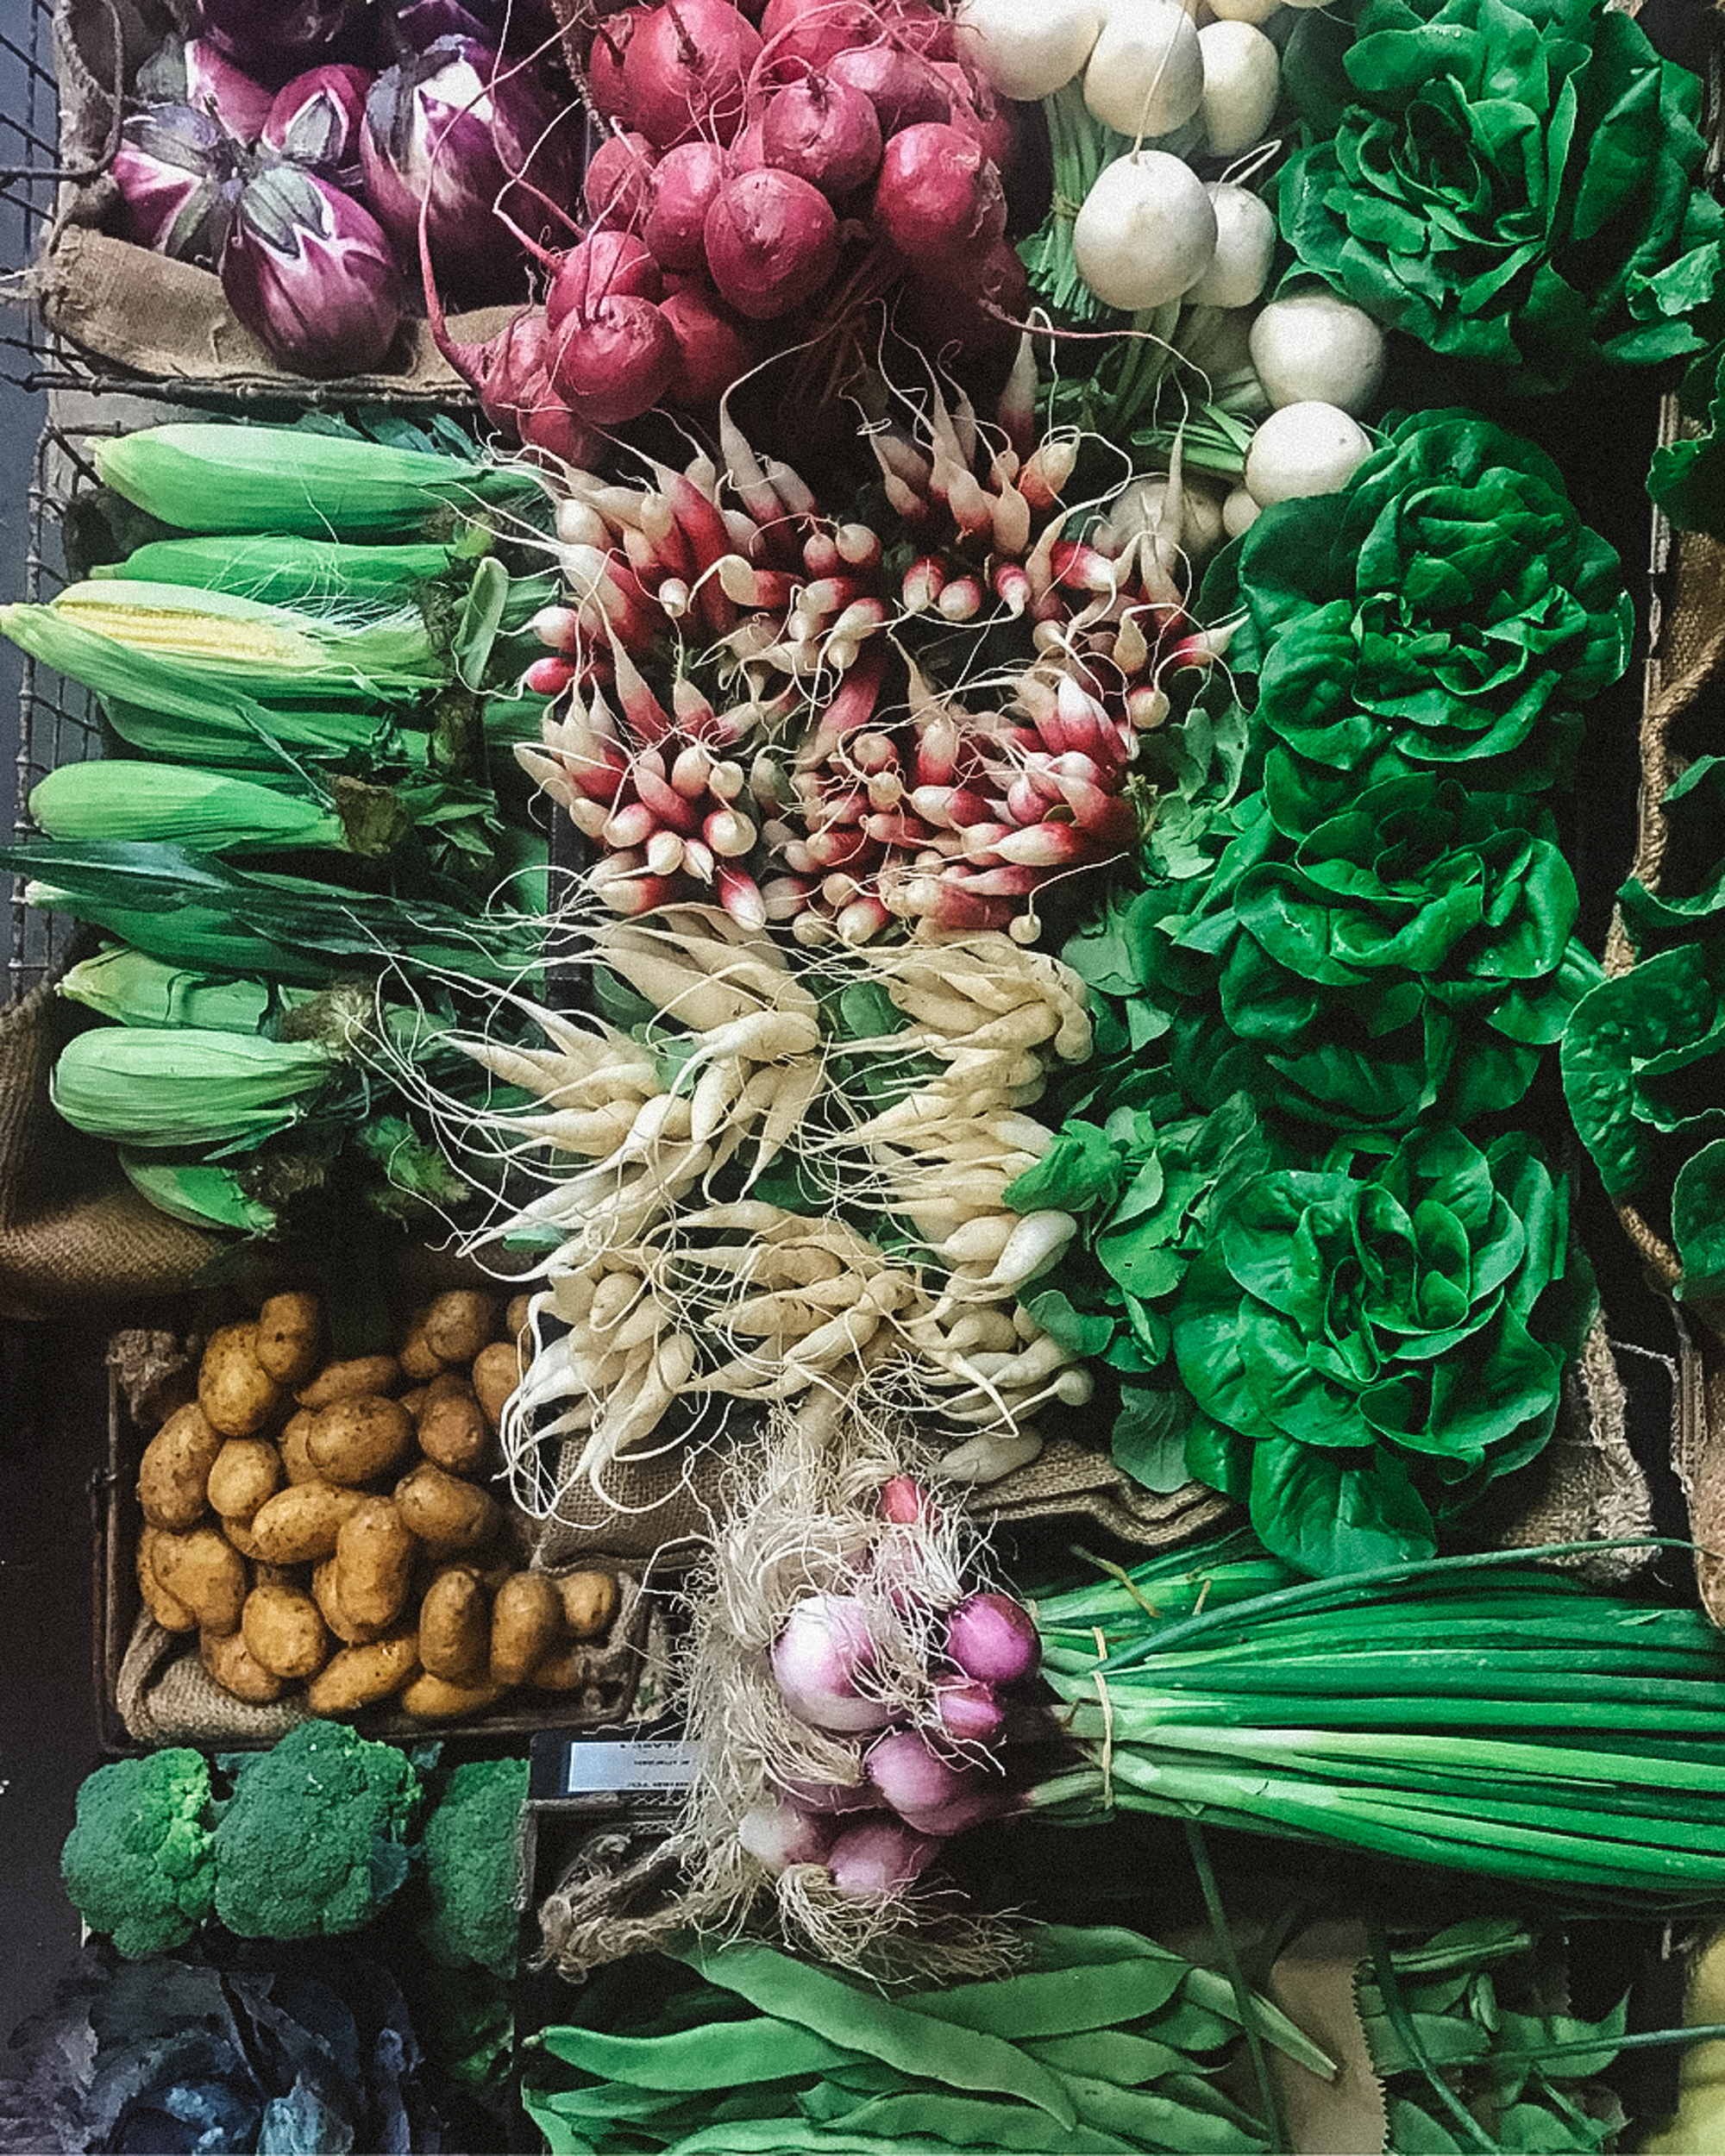 super seasonal produce direct from local growers -